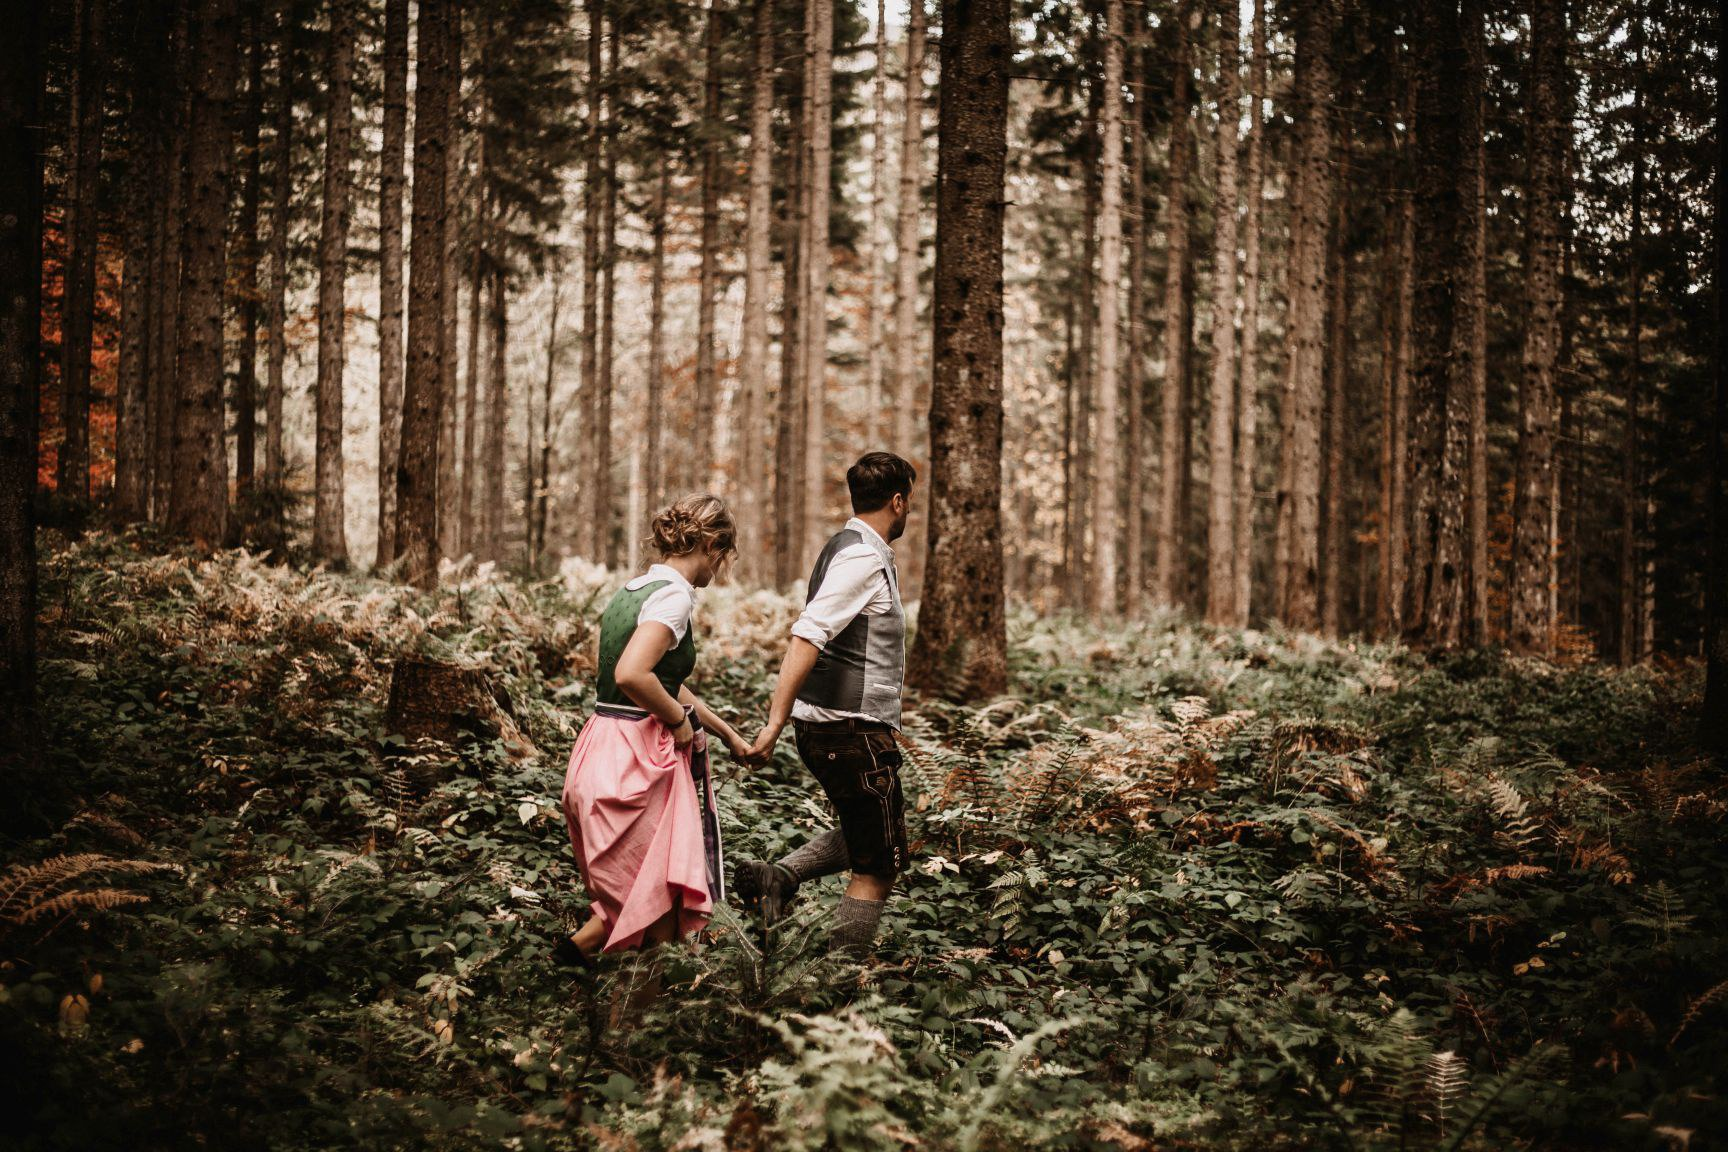 Lotte-Barry-photosession-in-Mountain-7